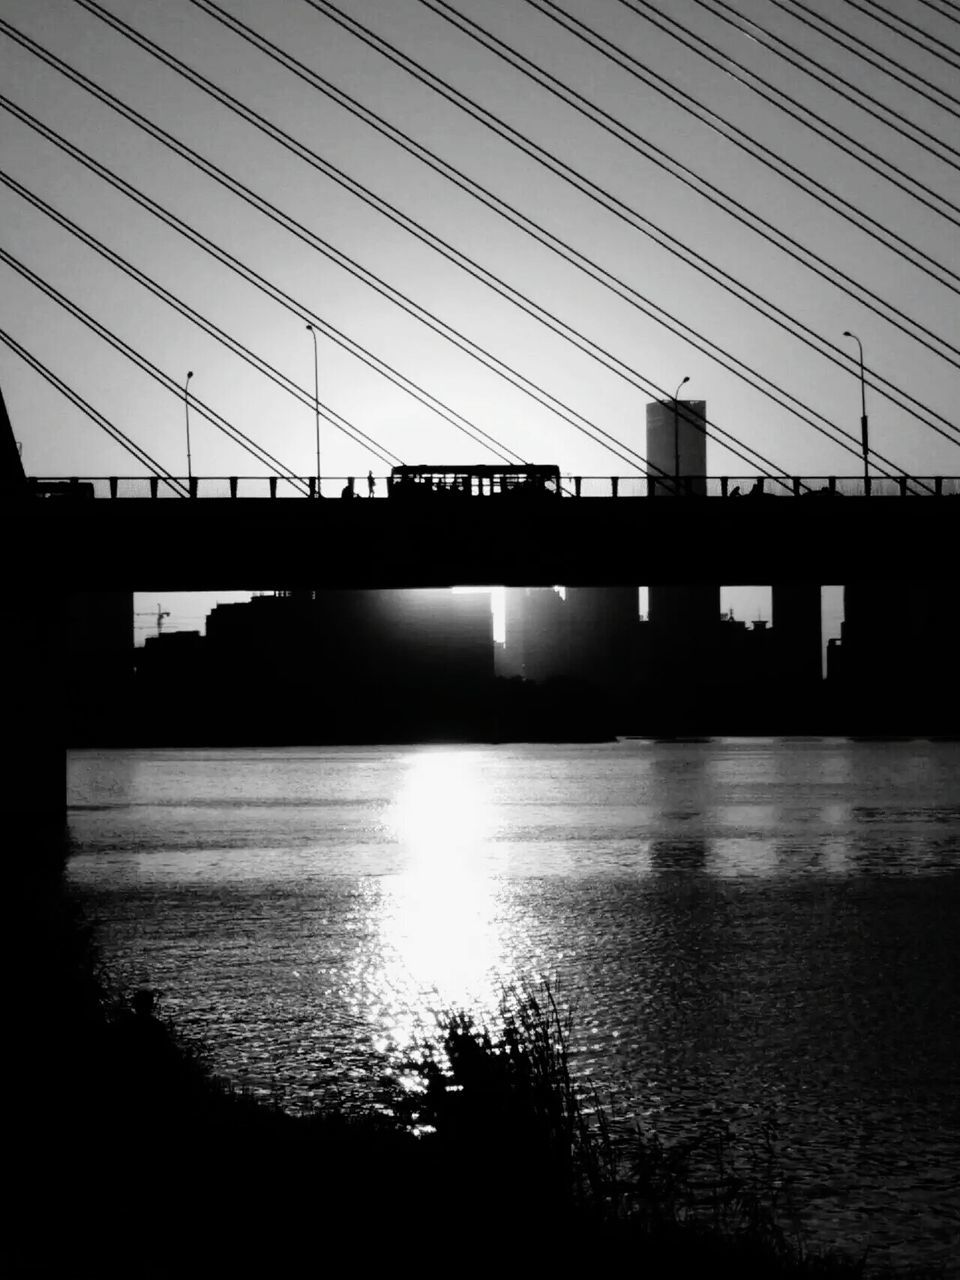 connection, bridge - man made structure, cable, built structure, architecture, sky, water, river, transportation, no people, bridge, electricity pylon, outdoors, day, electricity, silhouette, building exterior, suspension bridge, travel destinations, nature, clear sky, city